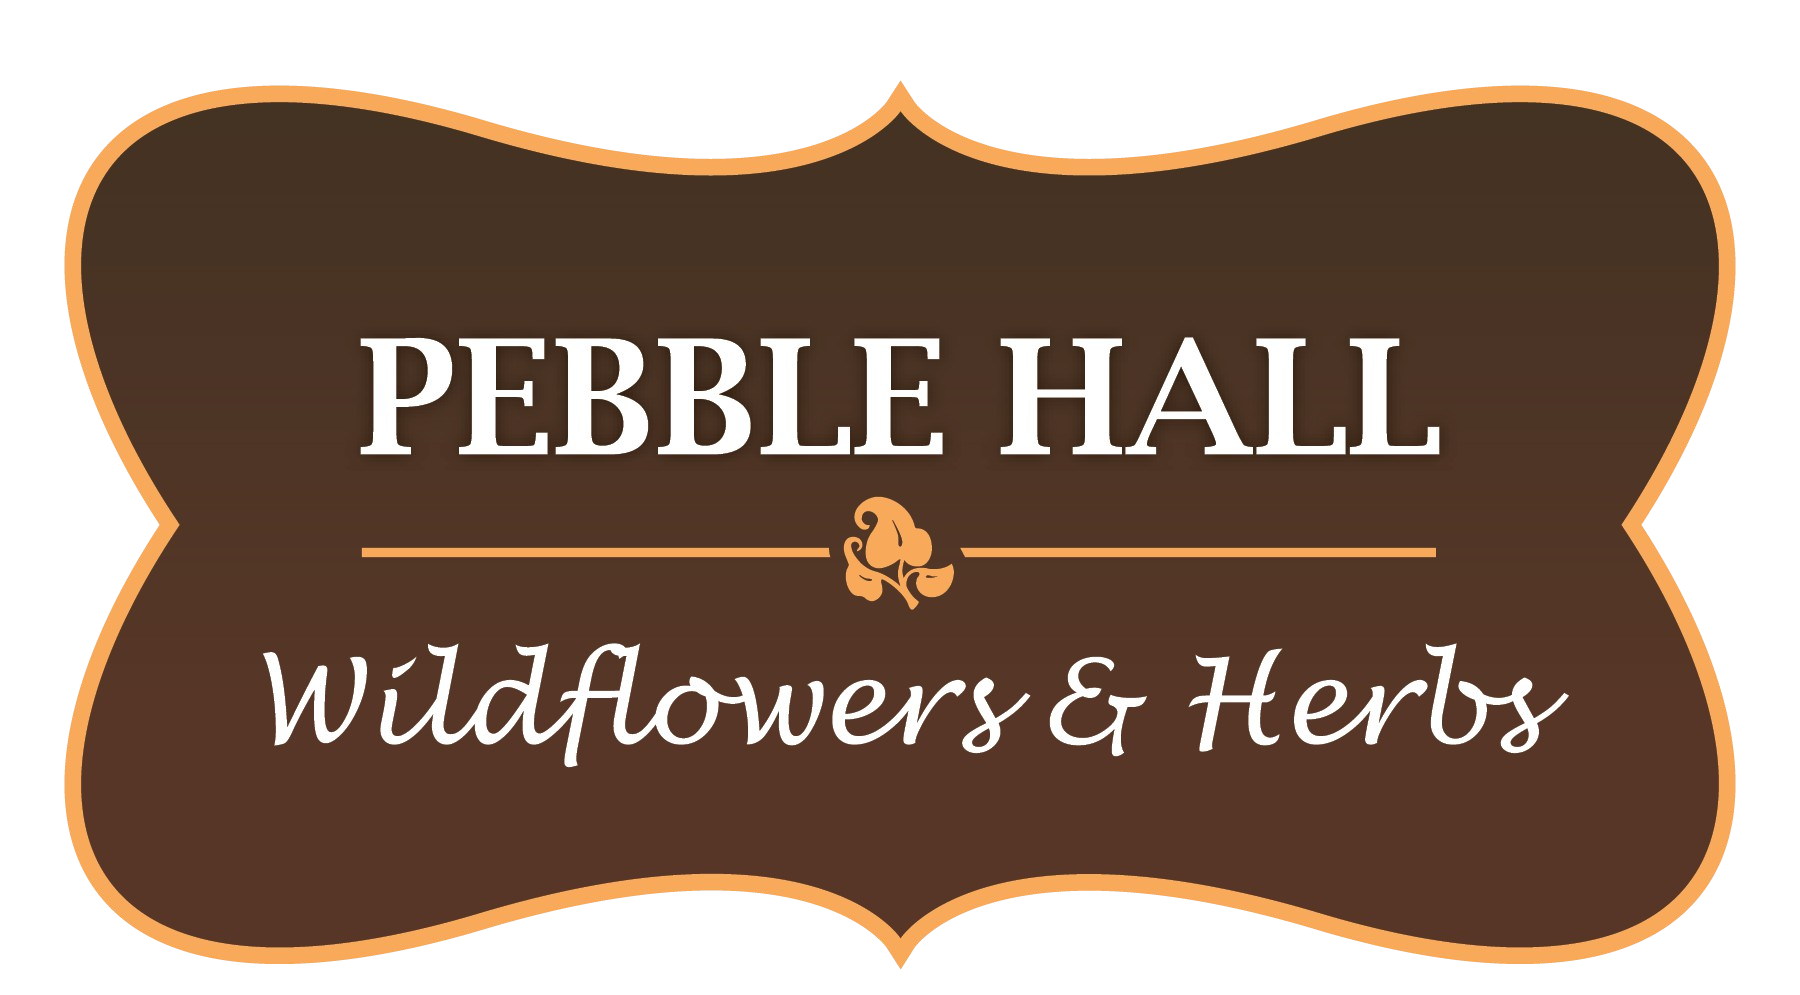 Pebble Hall Wildflowers & Herbs